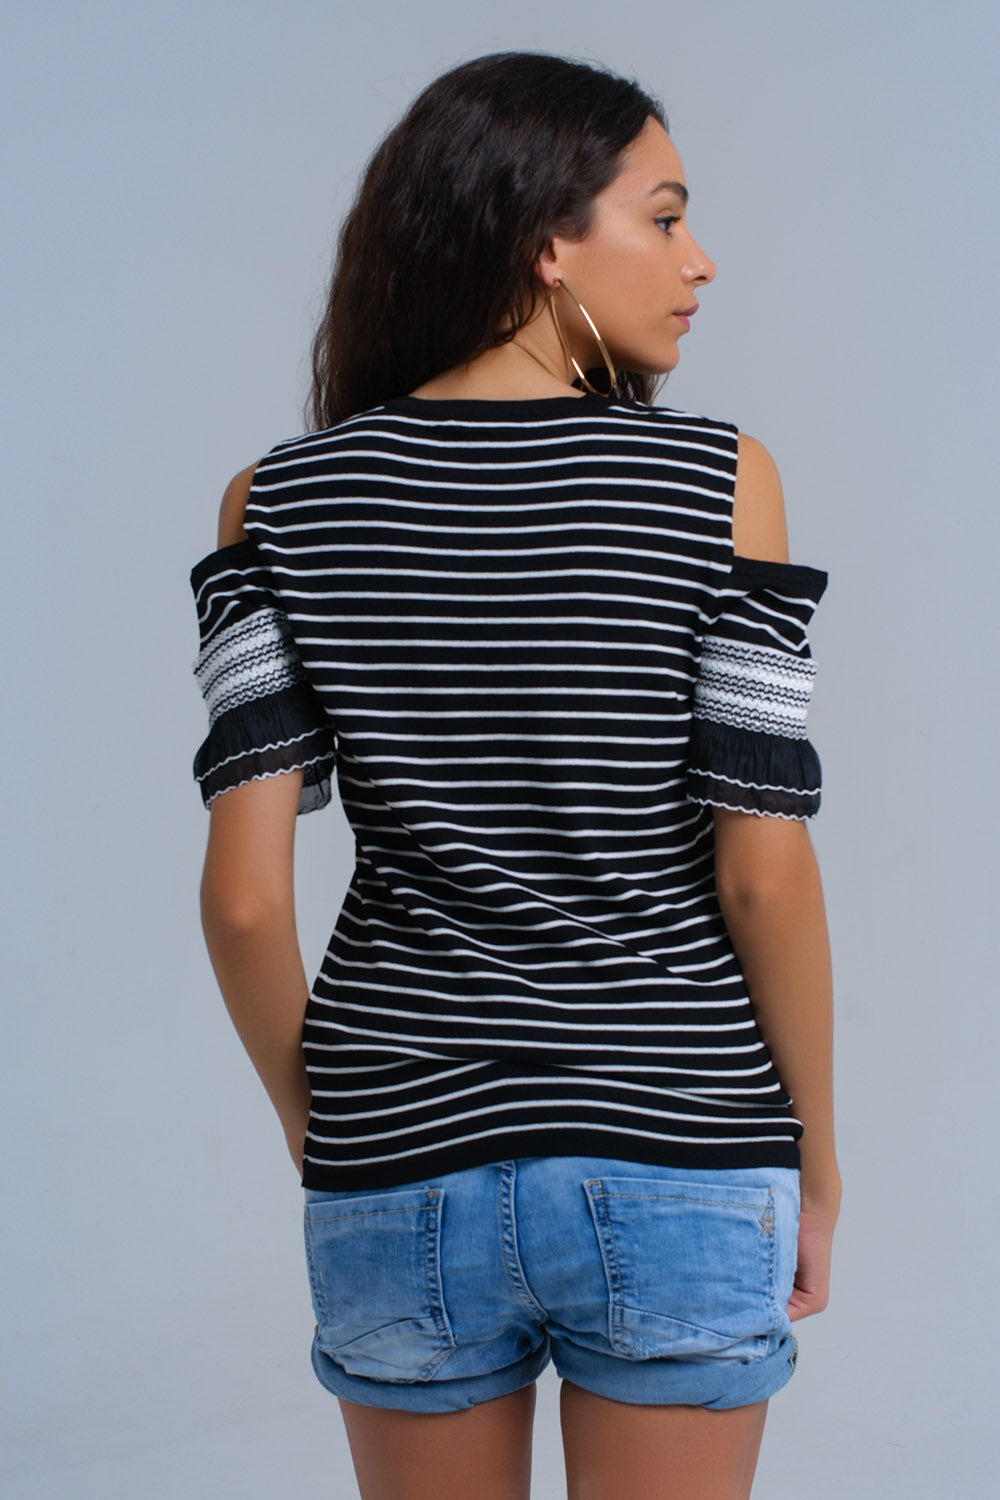 Black Striped Sweater With Embroidery-Women - Apparel - Sweaters - Pull Over-Product Details Black cold shoulder sweater with white horizontal stripes. It has a crew neck, a round hem and an open detail in the arm with embroidered bands.-Keyomi-Sook